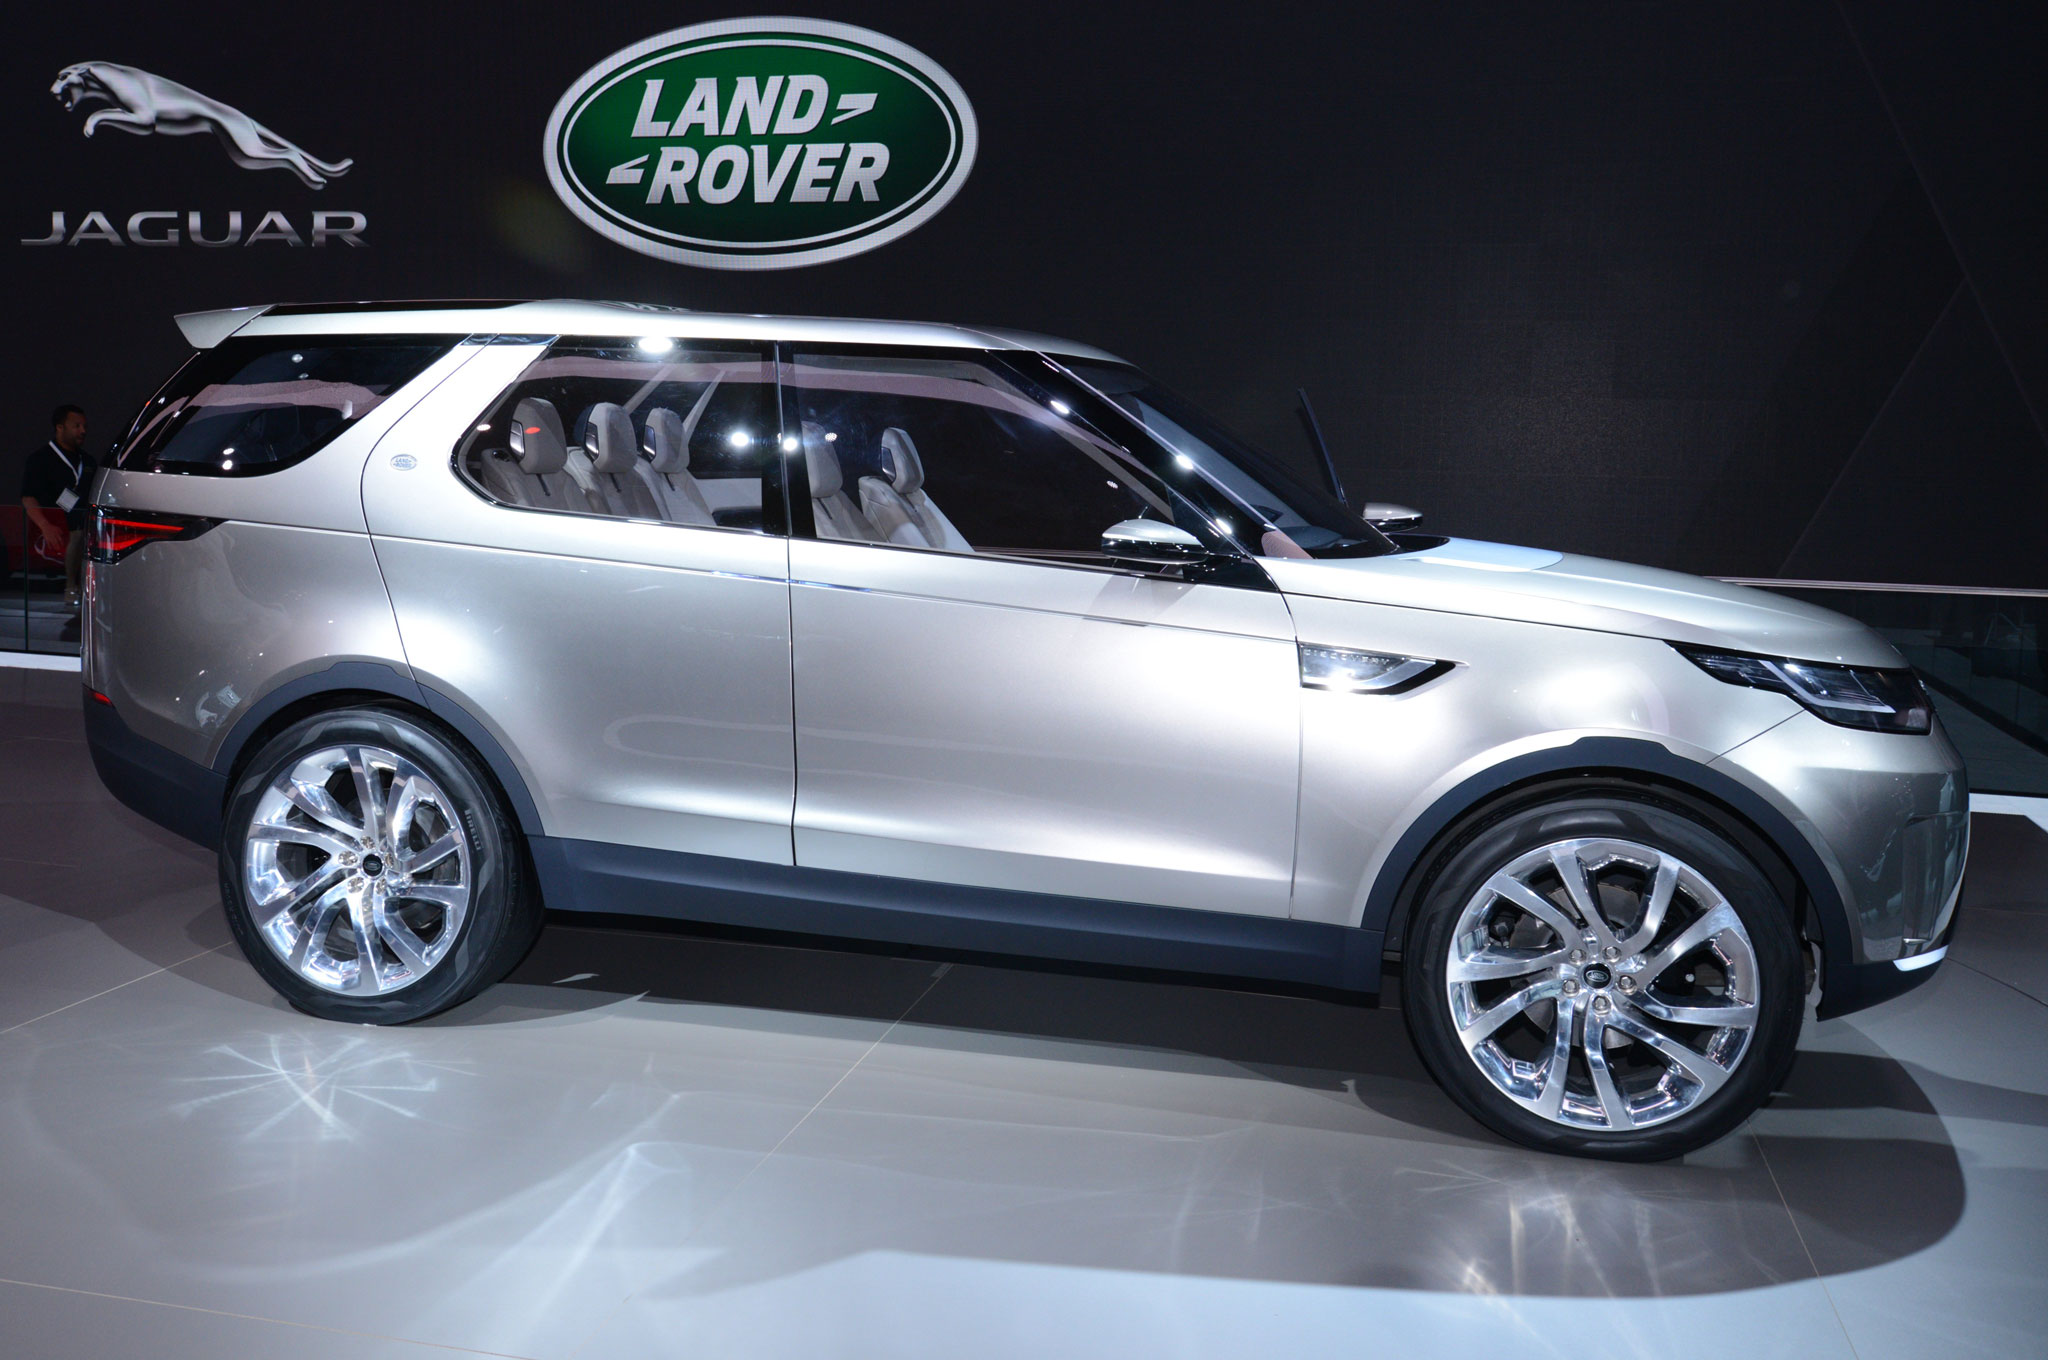 Next-Gen Land Rover Discovery Just the Beginning - Motor Trend